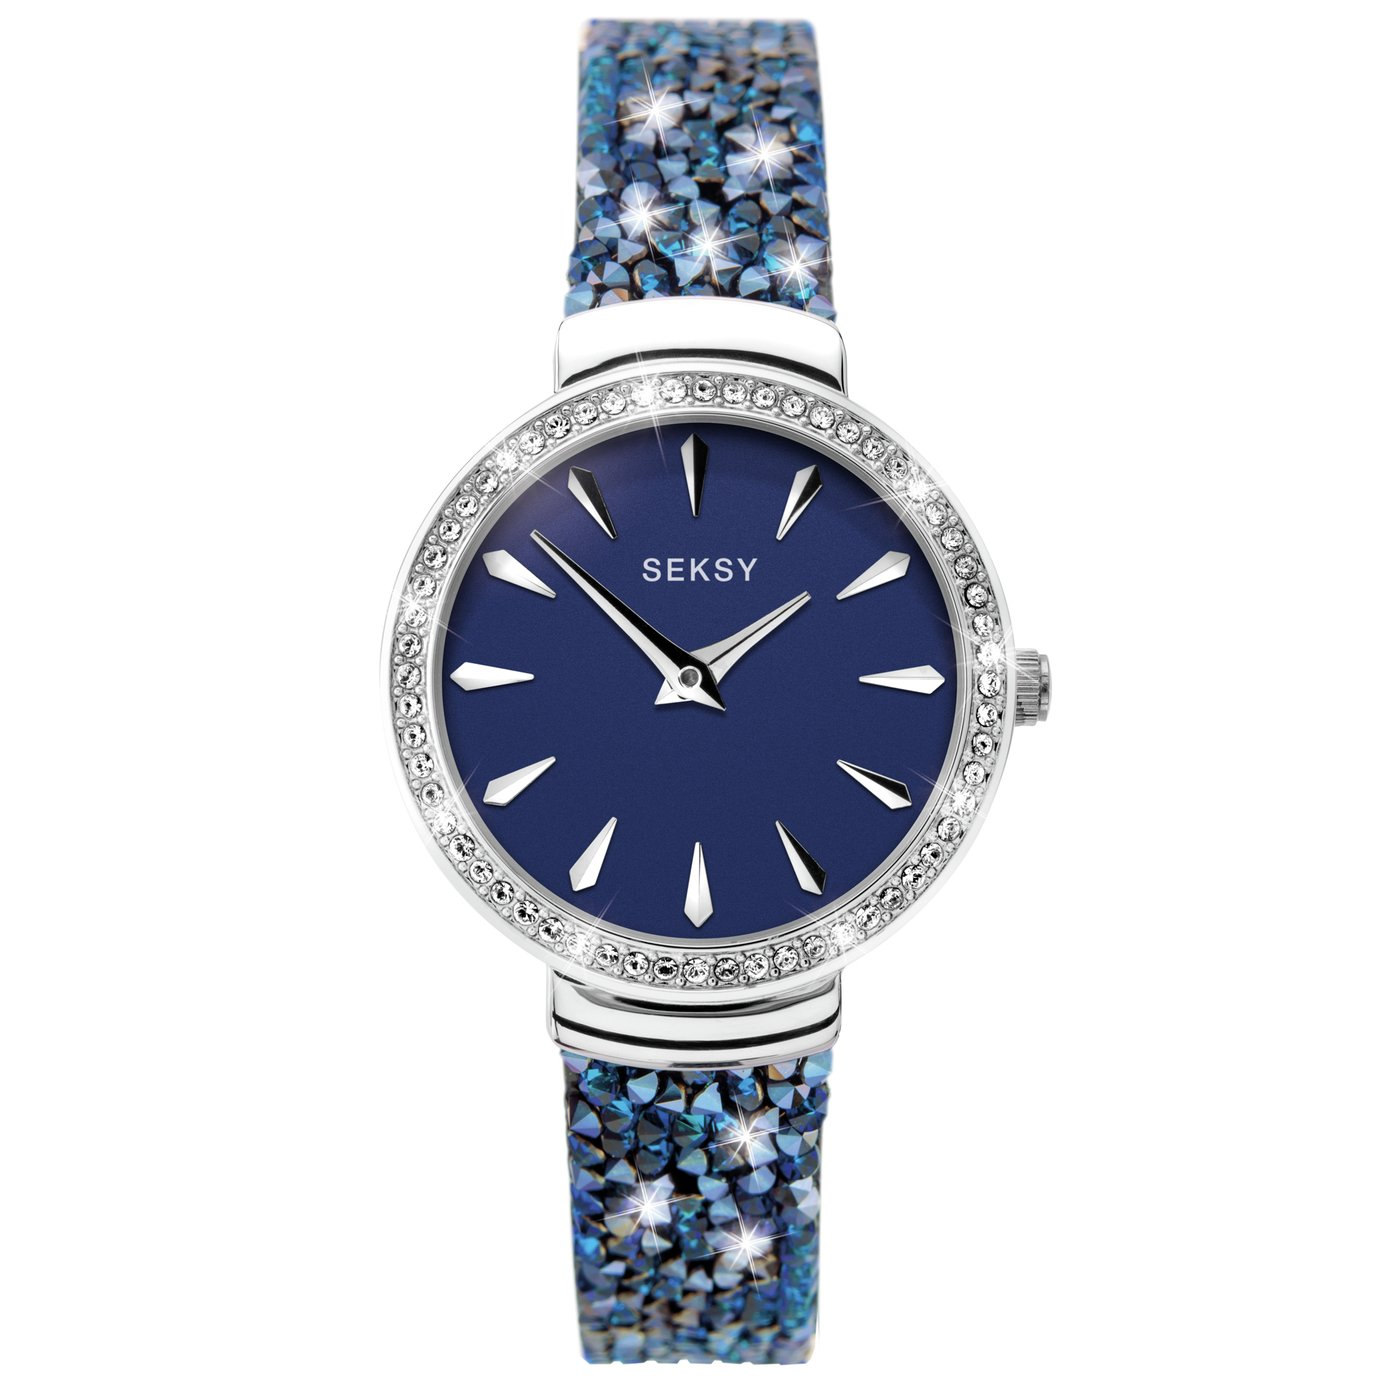 Seksy Ladies Black Leather Strap Watch with Blue Crystals